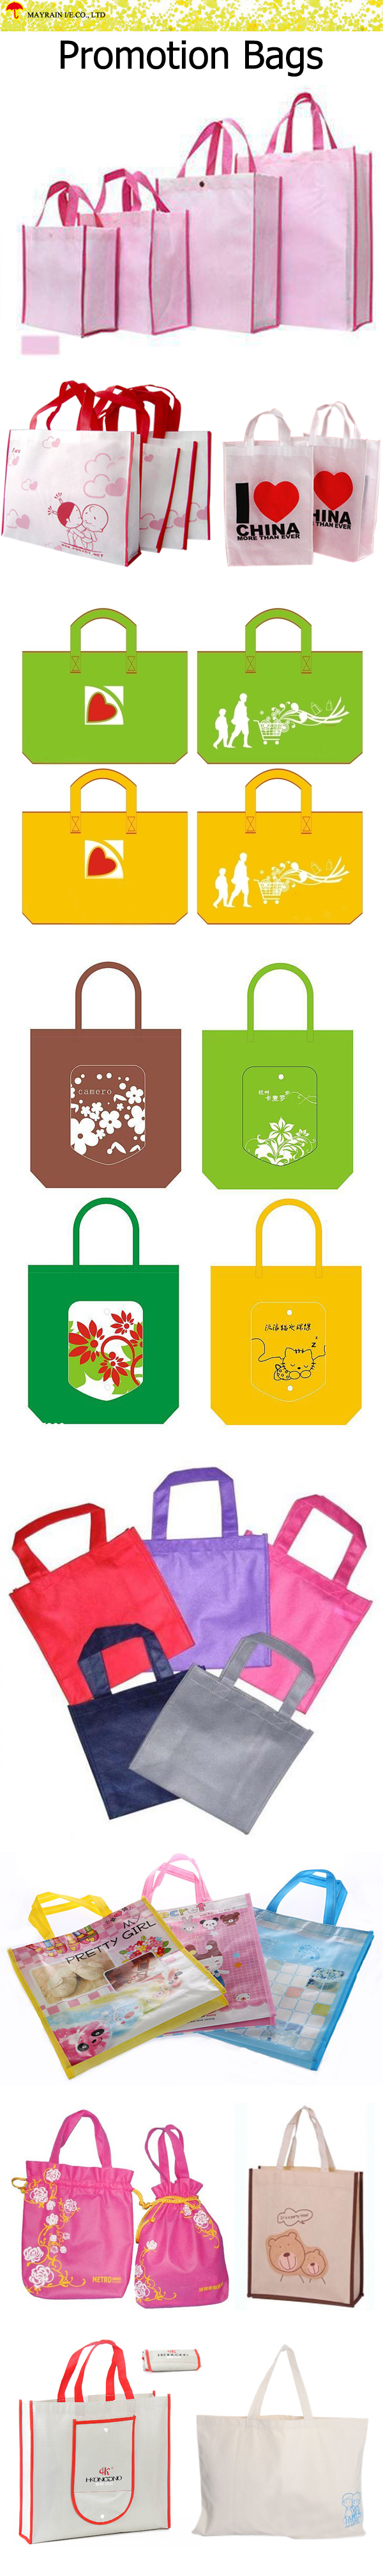 Promotion Bags